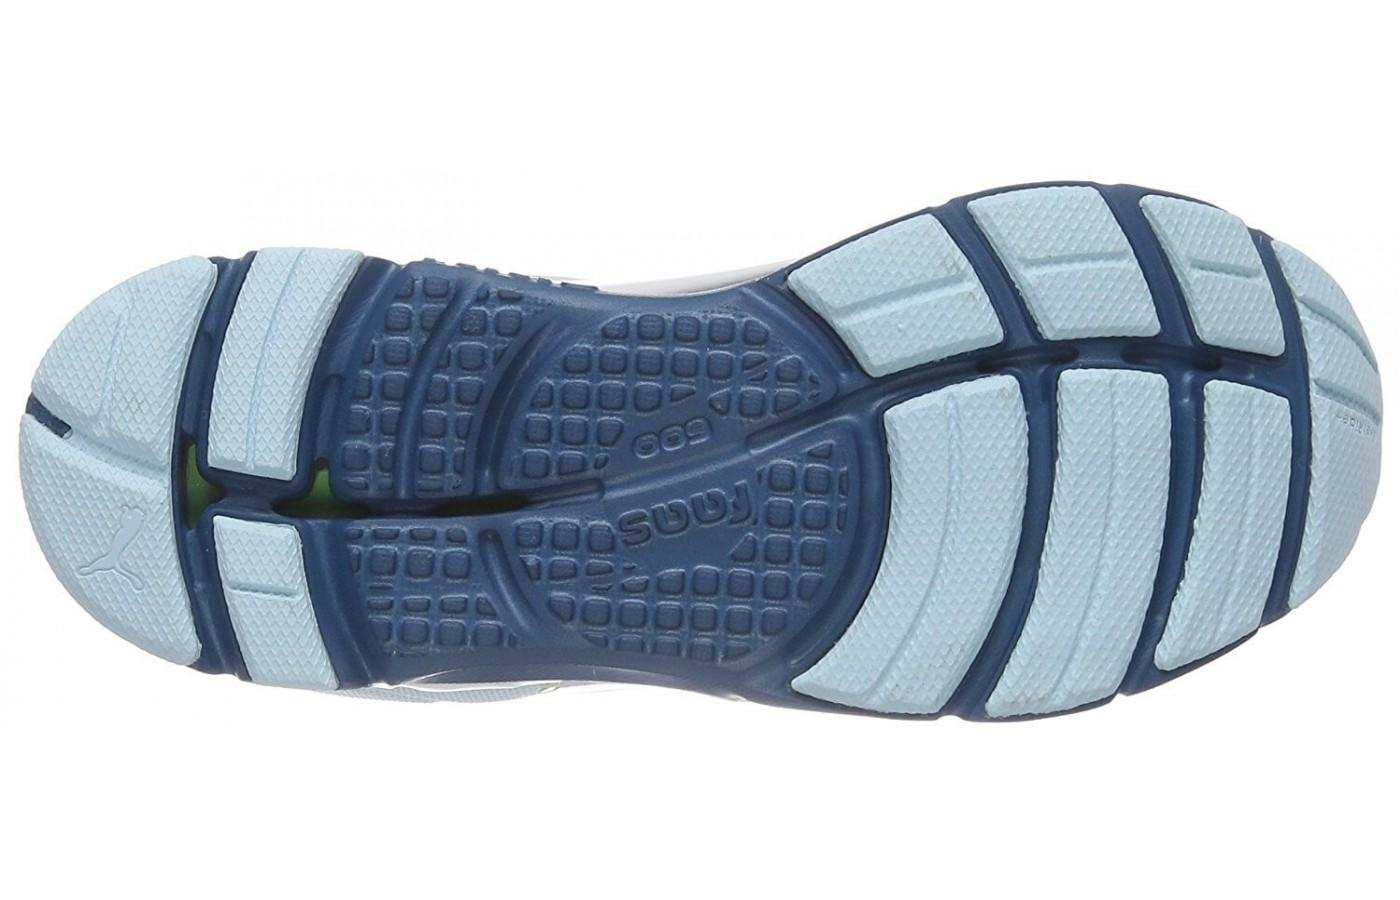 The durable rubber outsole of the Puma Faas 600 v3